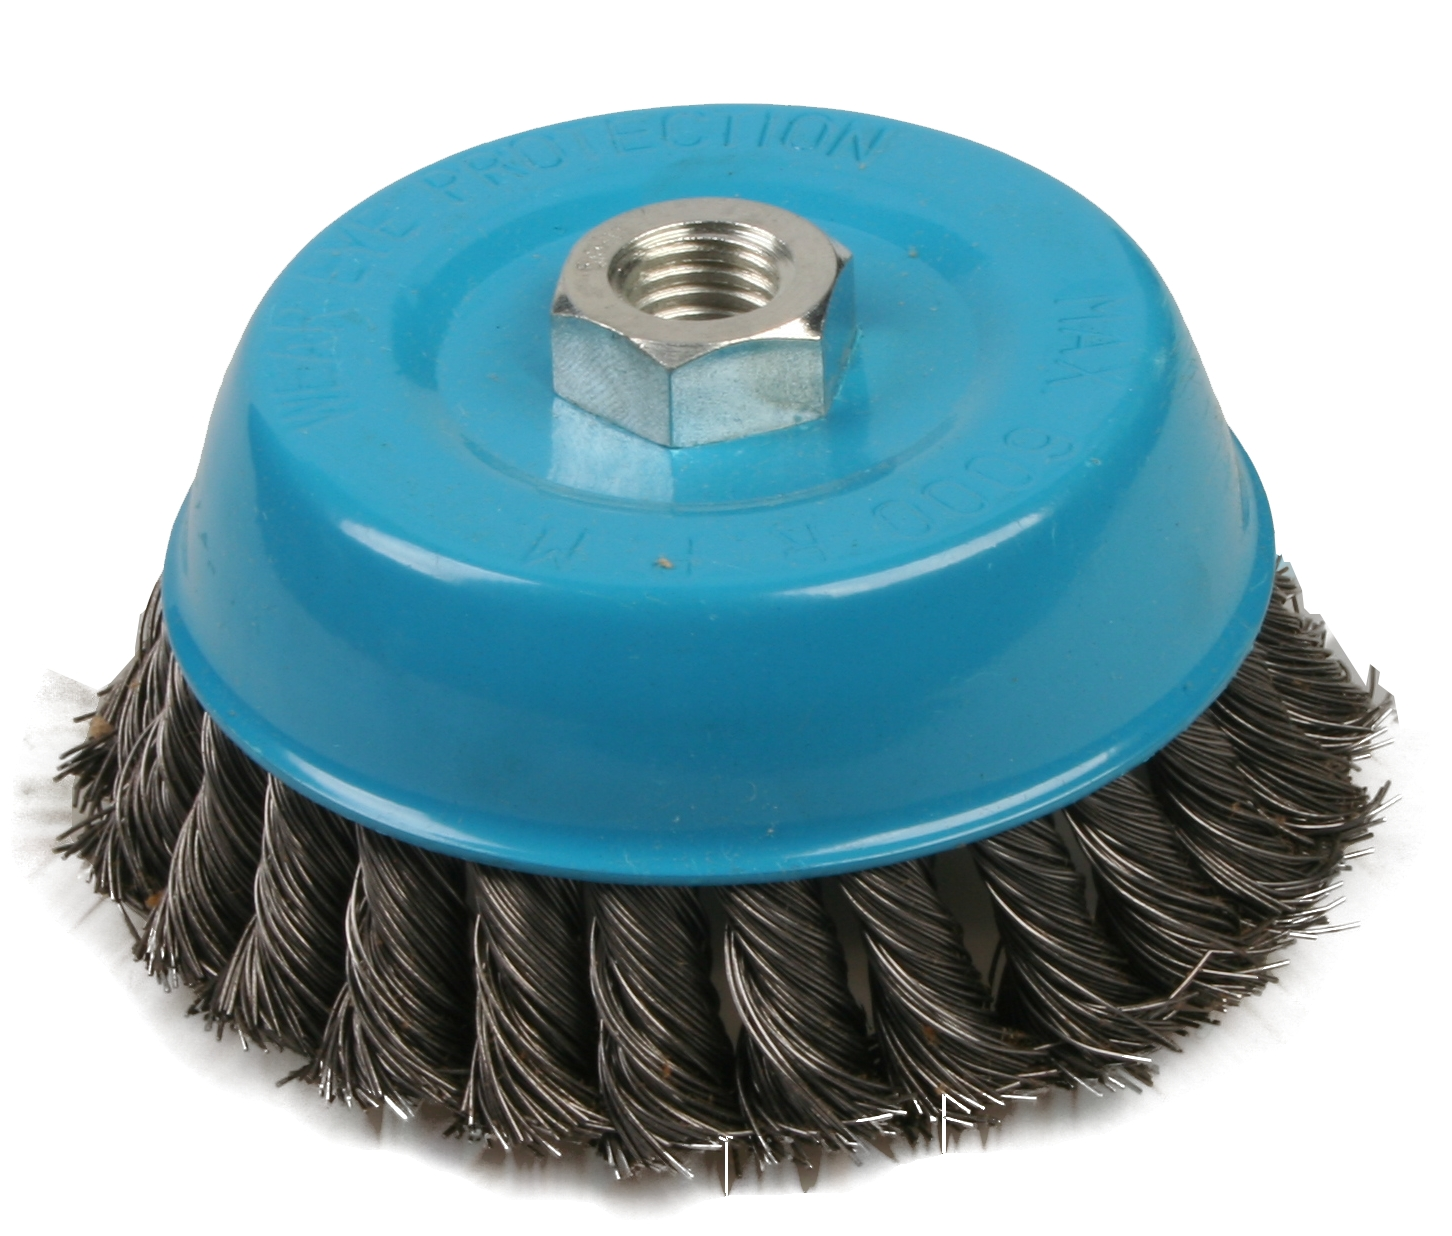 Brufer 95135 4″x5/8″ Threaded Knot Wire Cup Brush